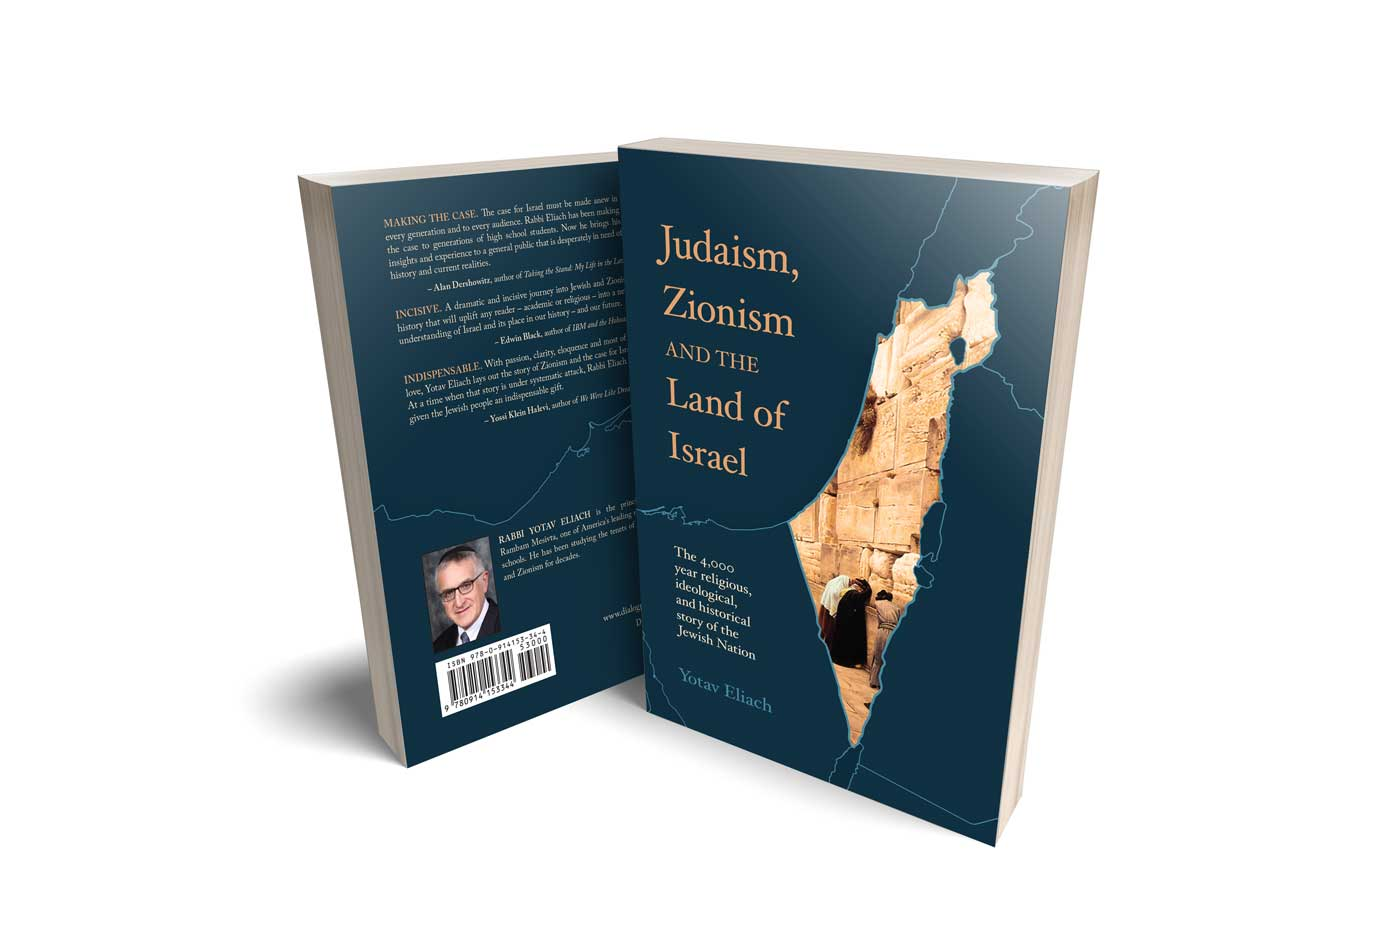 Judaism, Zionism, and the Land of Israel